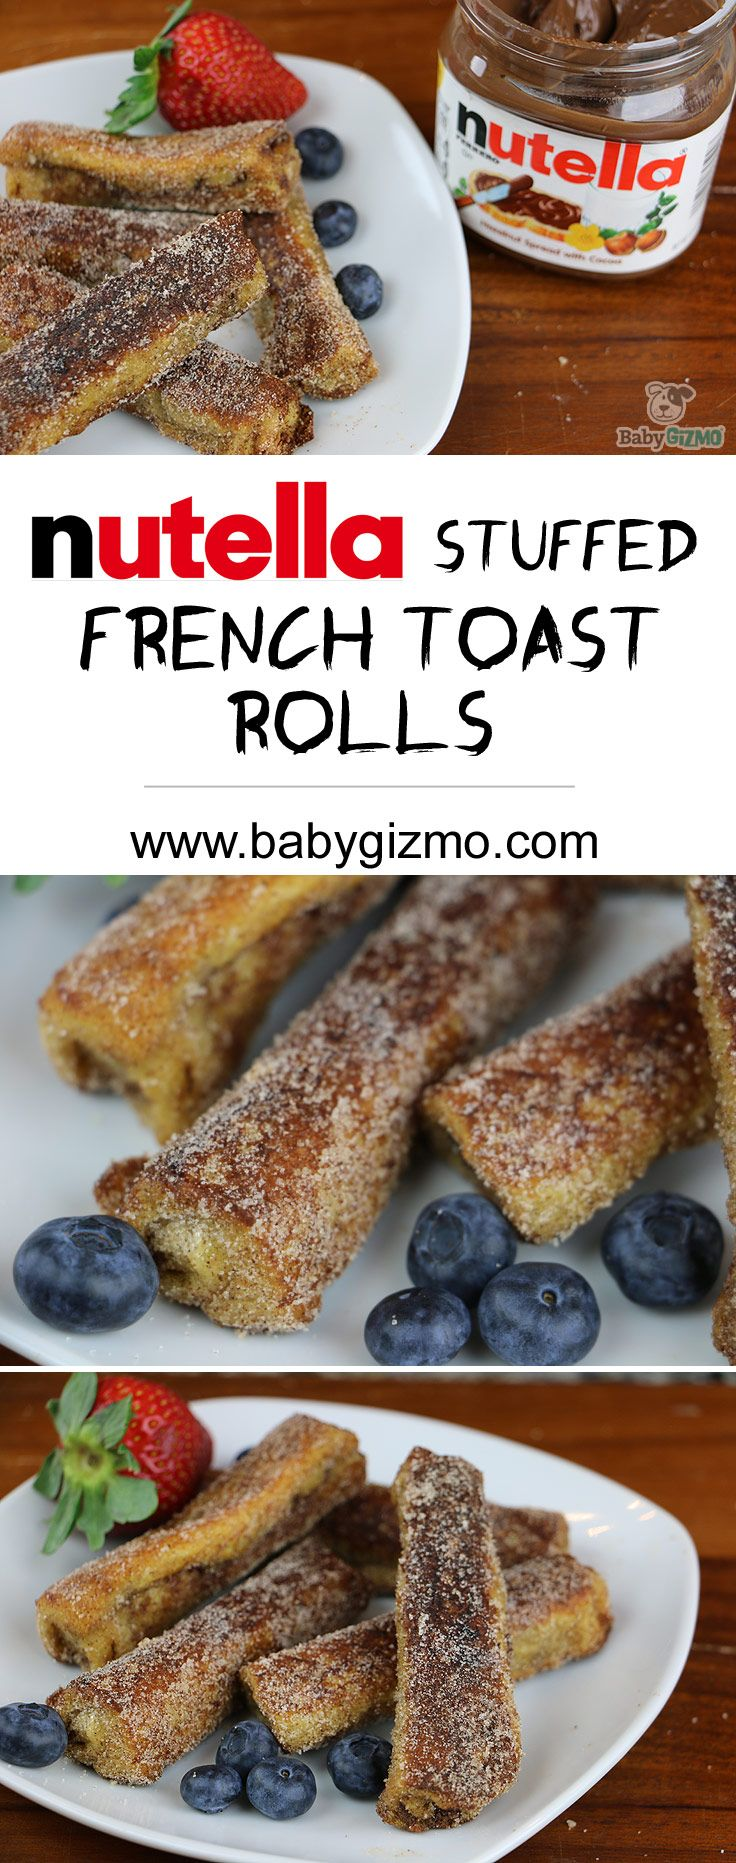 These Nutella Stuffed French Toast Rolls are perfect for breakfast, dessert or even a snack! Plus, they are super easy to make! #breakfast #dessert #nutella